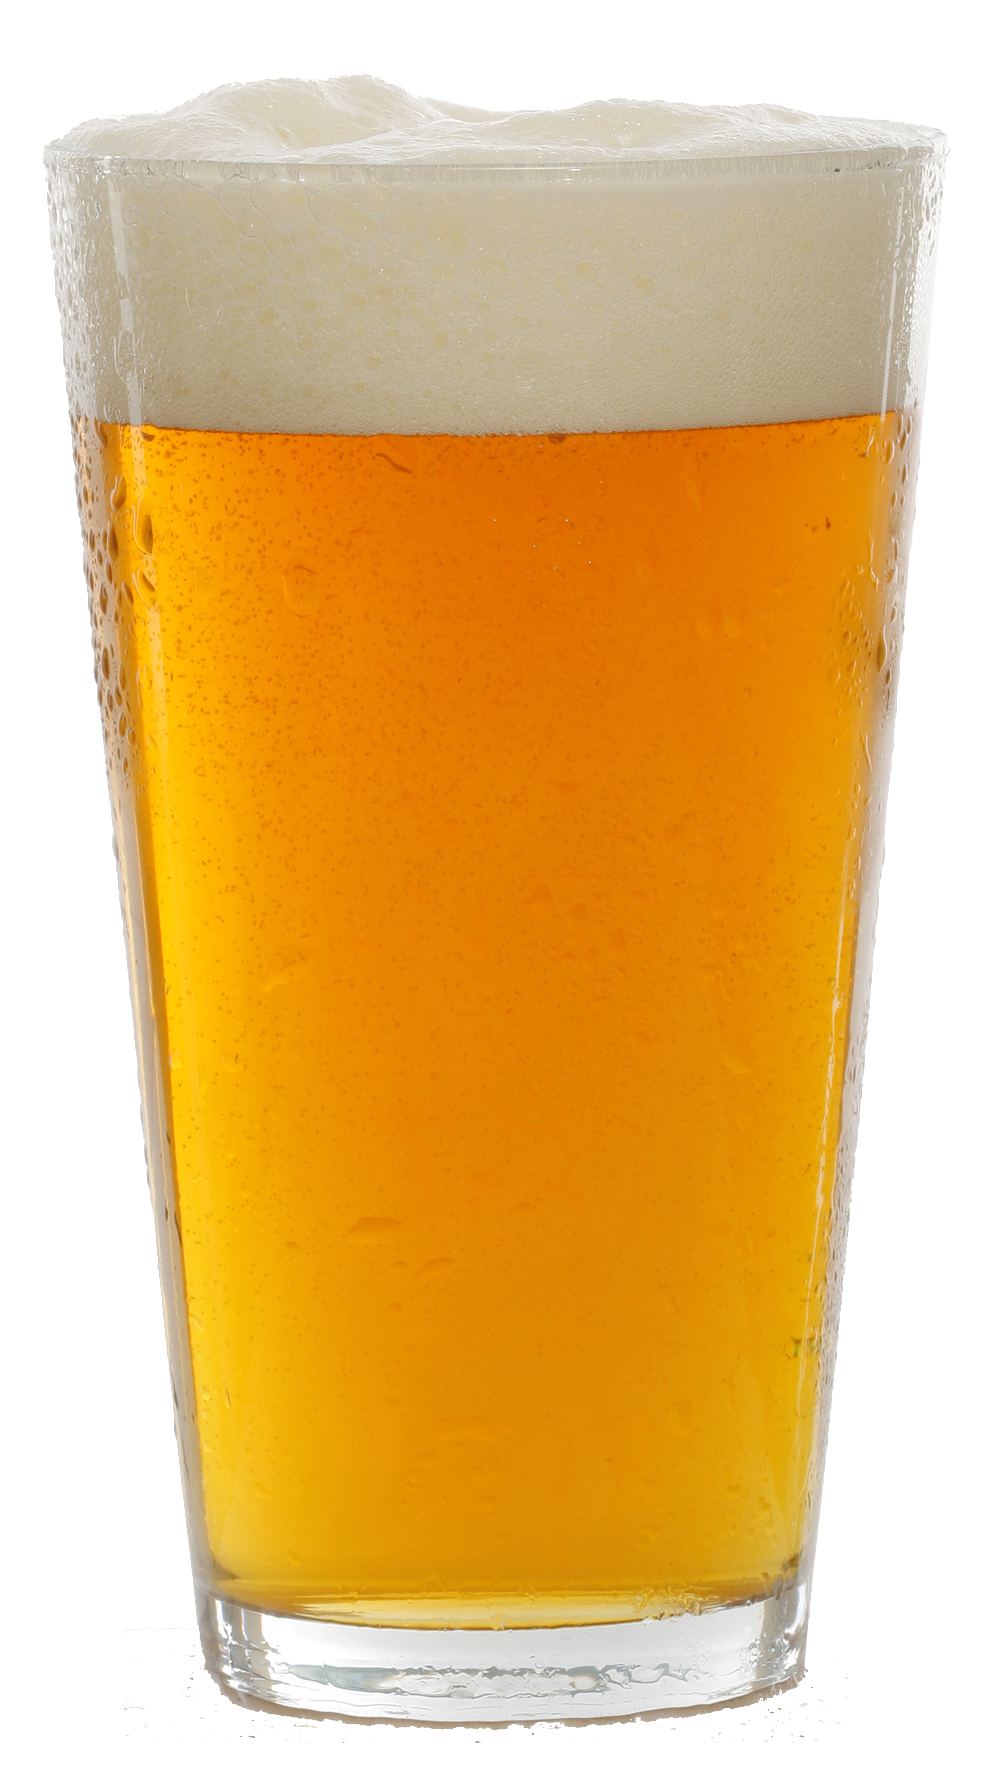 Beer png images free. Drinking clipart shot glass